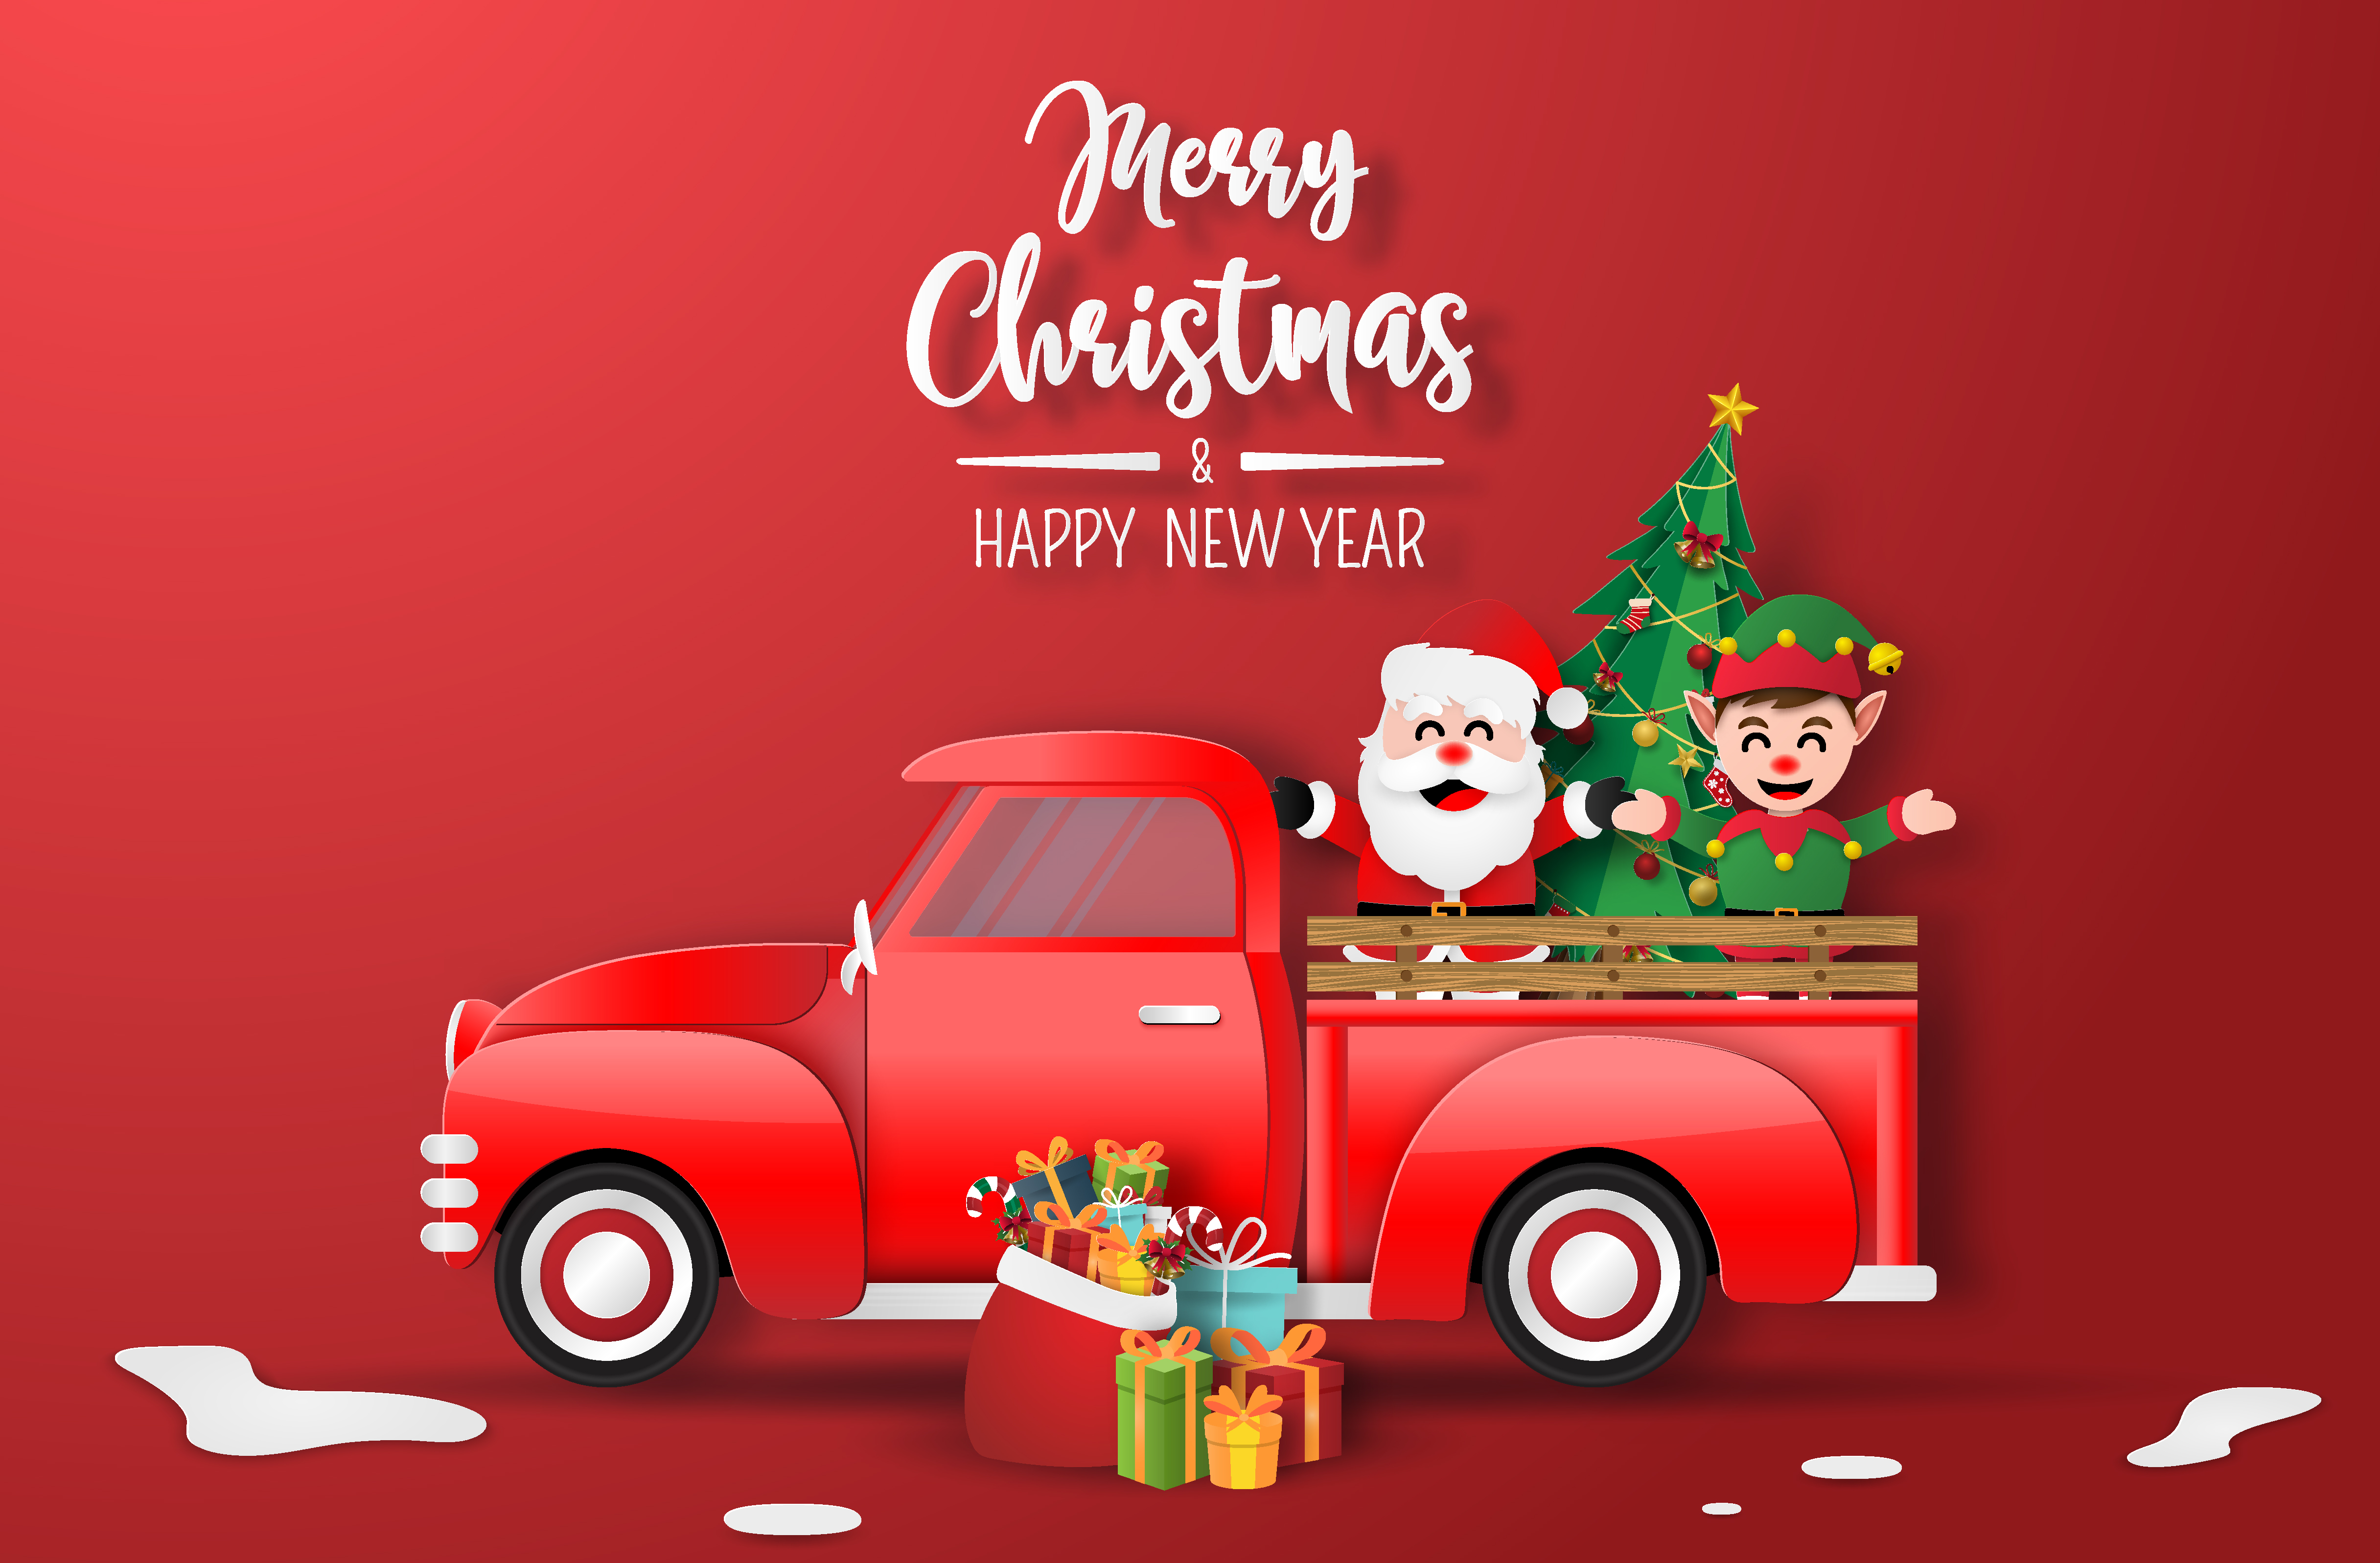 merry christmas and happy new year card with santa and elf in red truck download free vectors clipart graphics vector art vecteezy